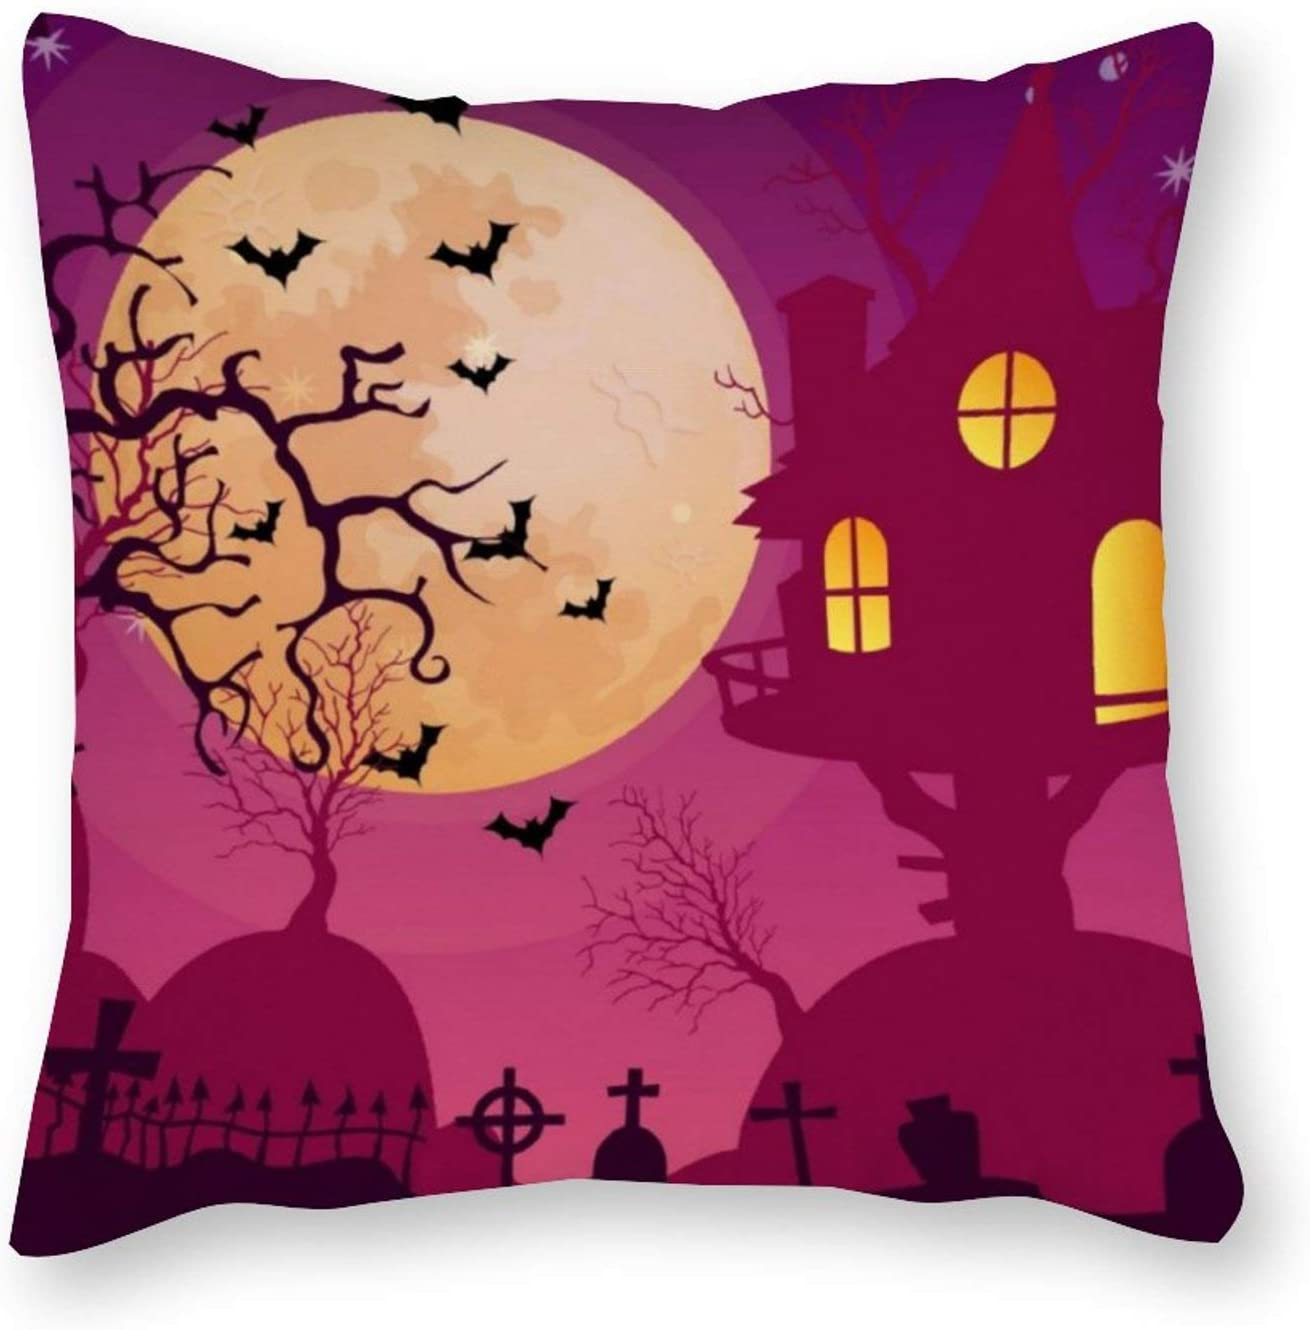 AILOVYO Decorative Canvas Throw Pillow Covers Modern Style Family Pink Halloween Haunted House for Room Bedroom Room Sofa Chair Car